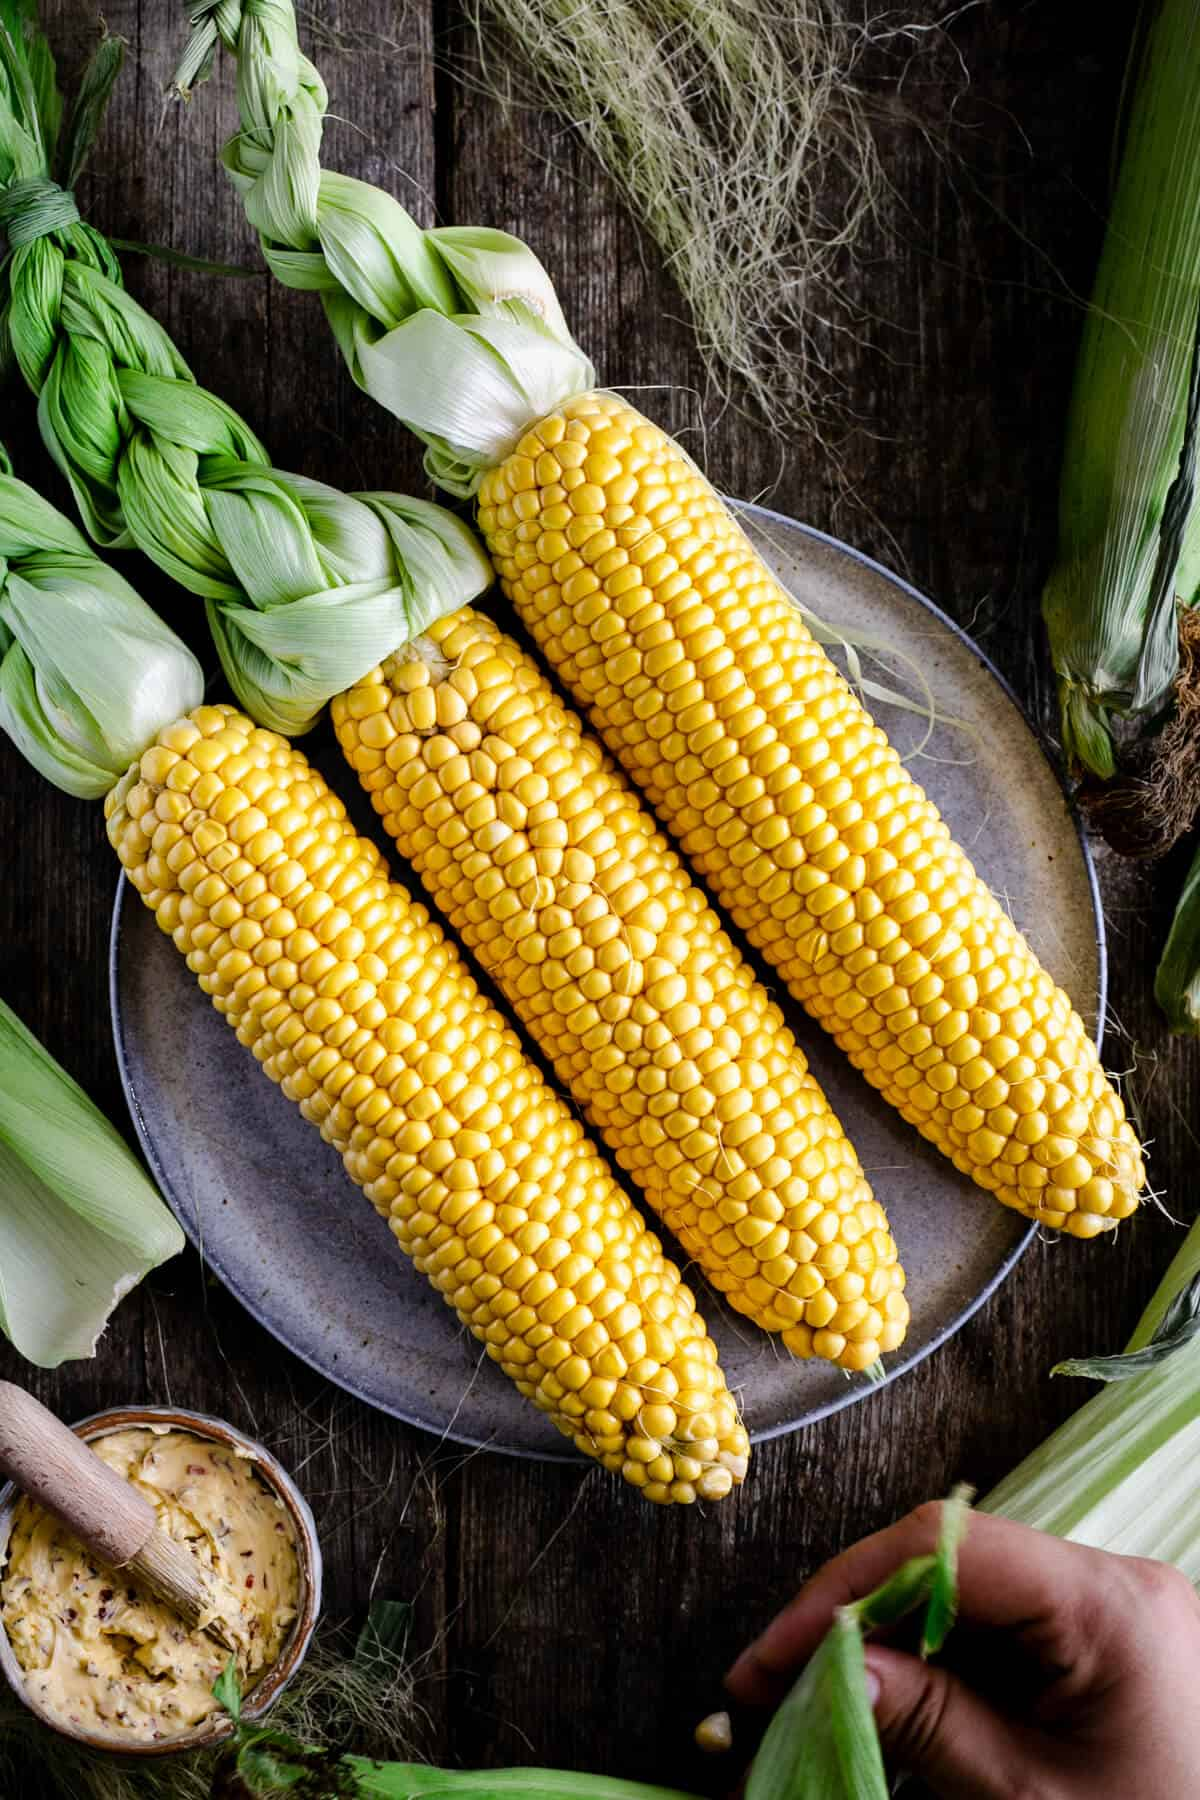 Three fresh cobs of corn on the plate